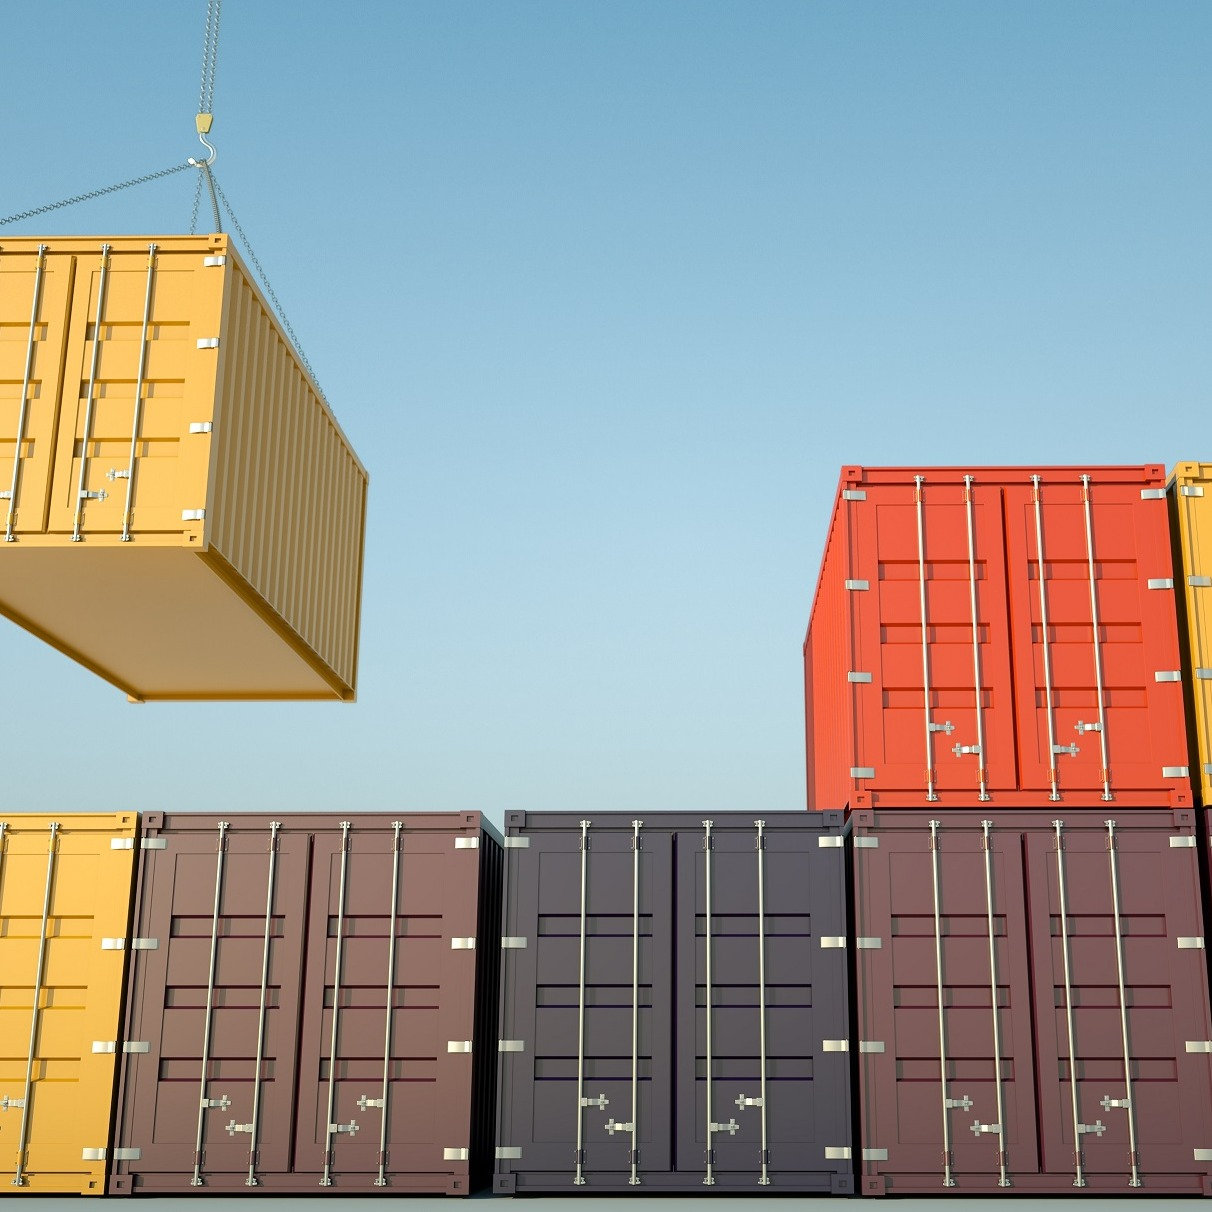 Seeking novel proposals for automated inspection of shipping containers at container depots